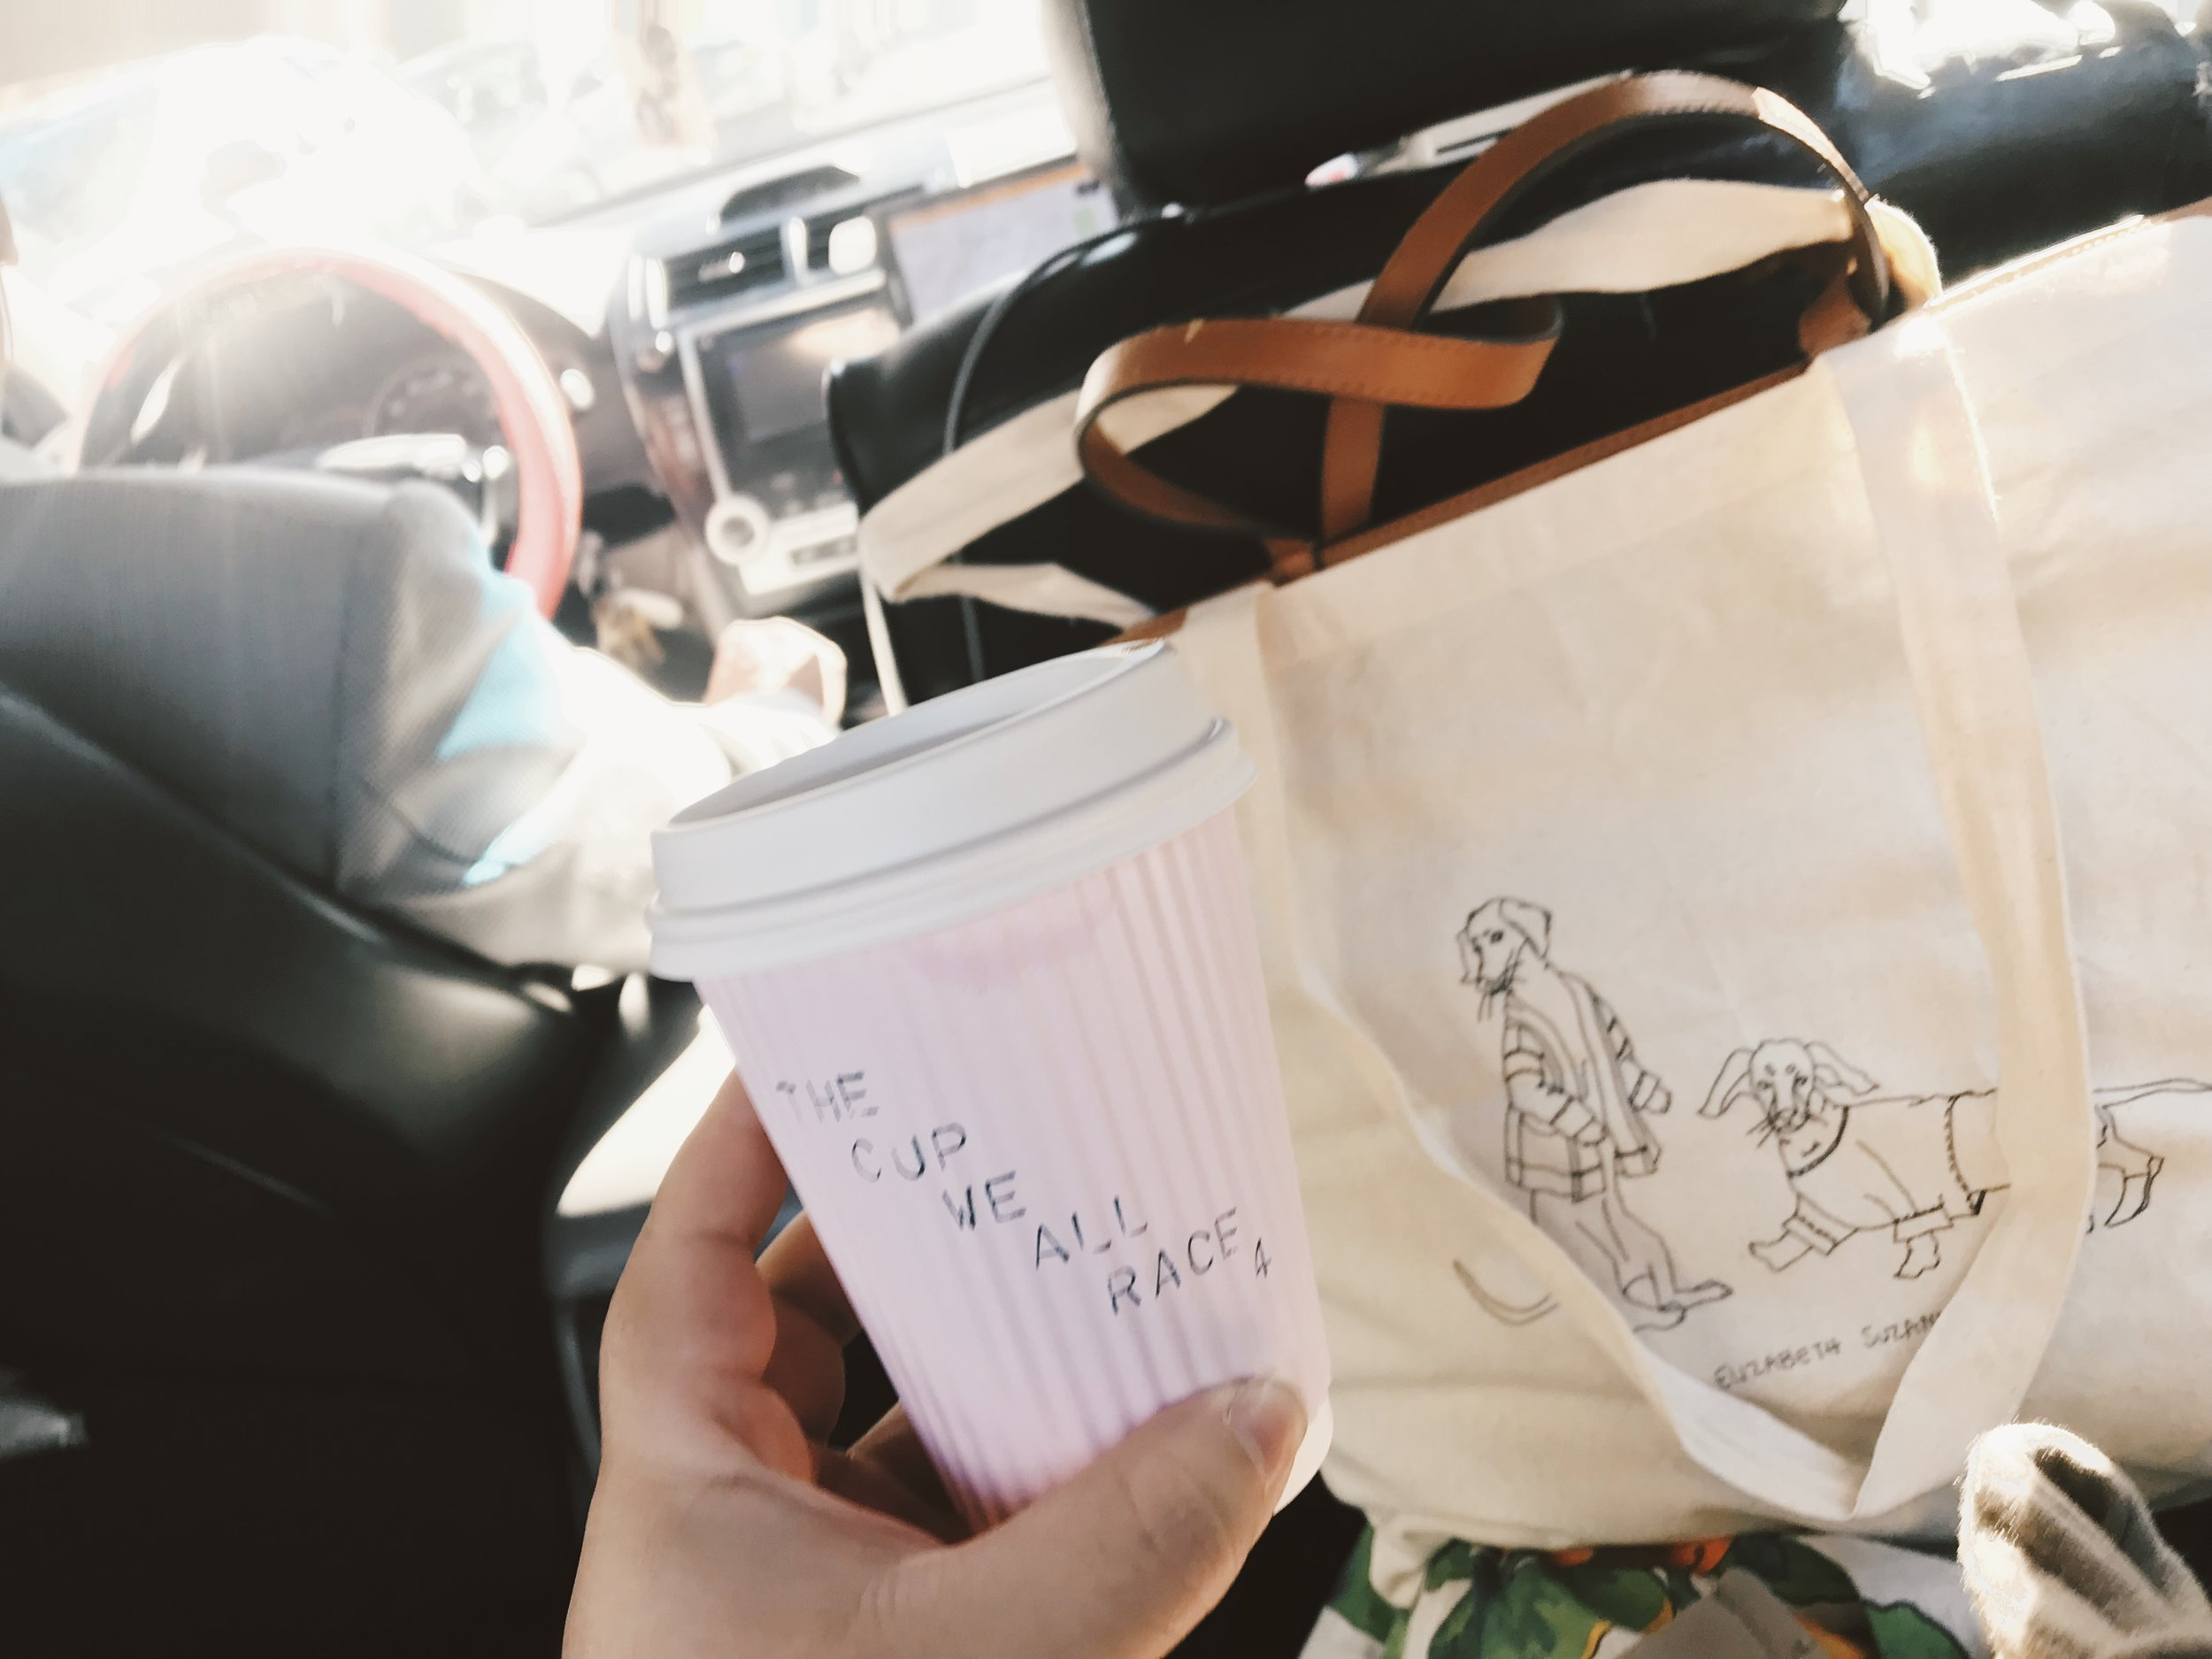 Racing to our next destination, coffee in tow.